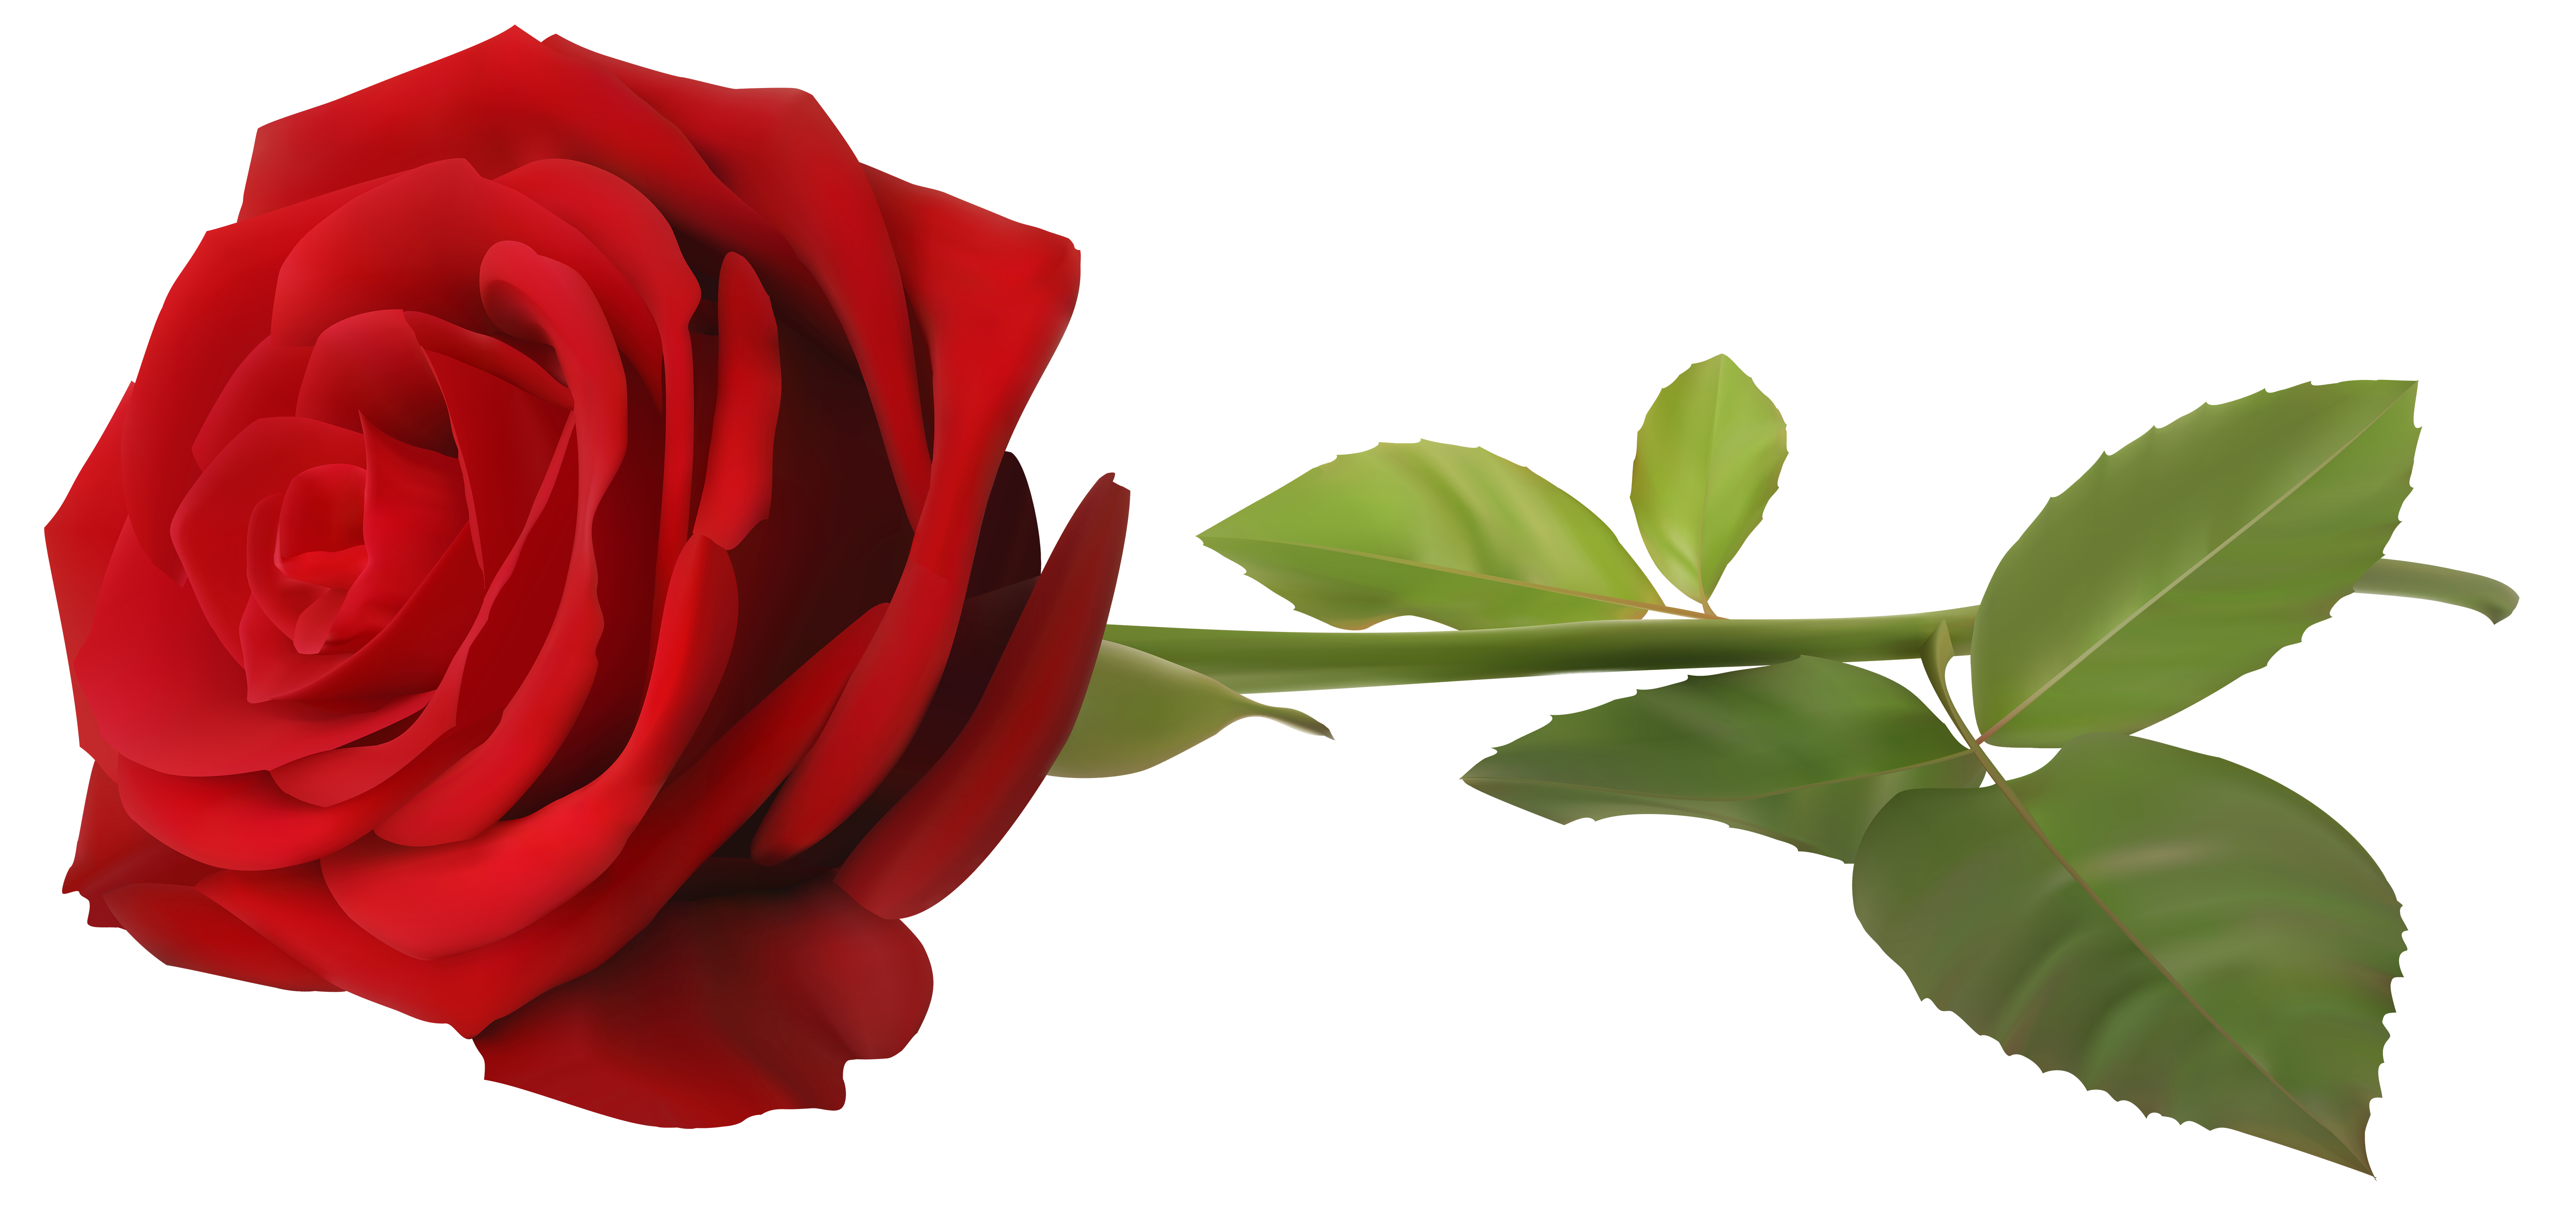 Flower .png png. Red rose with stem